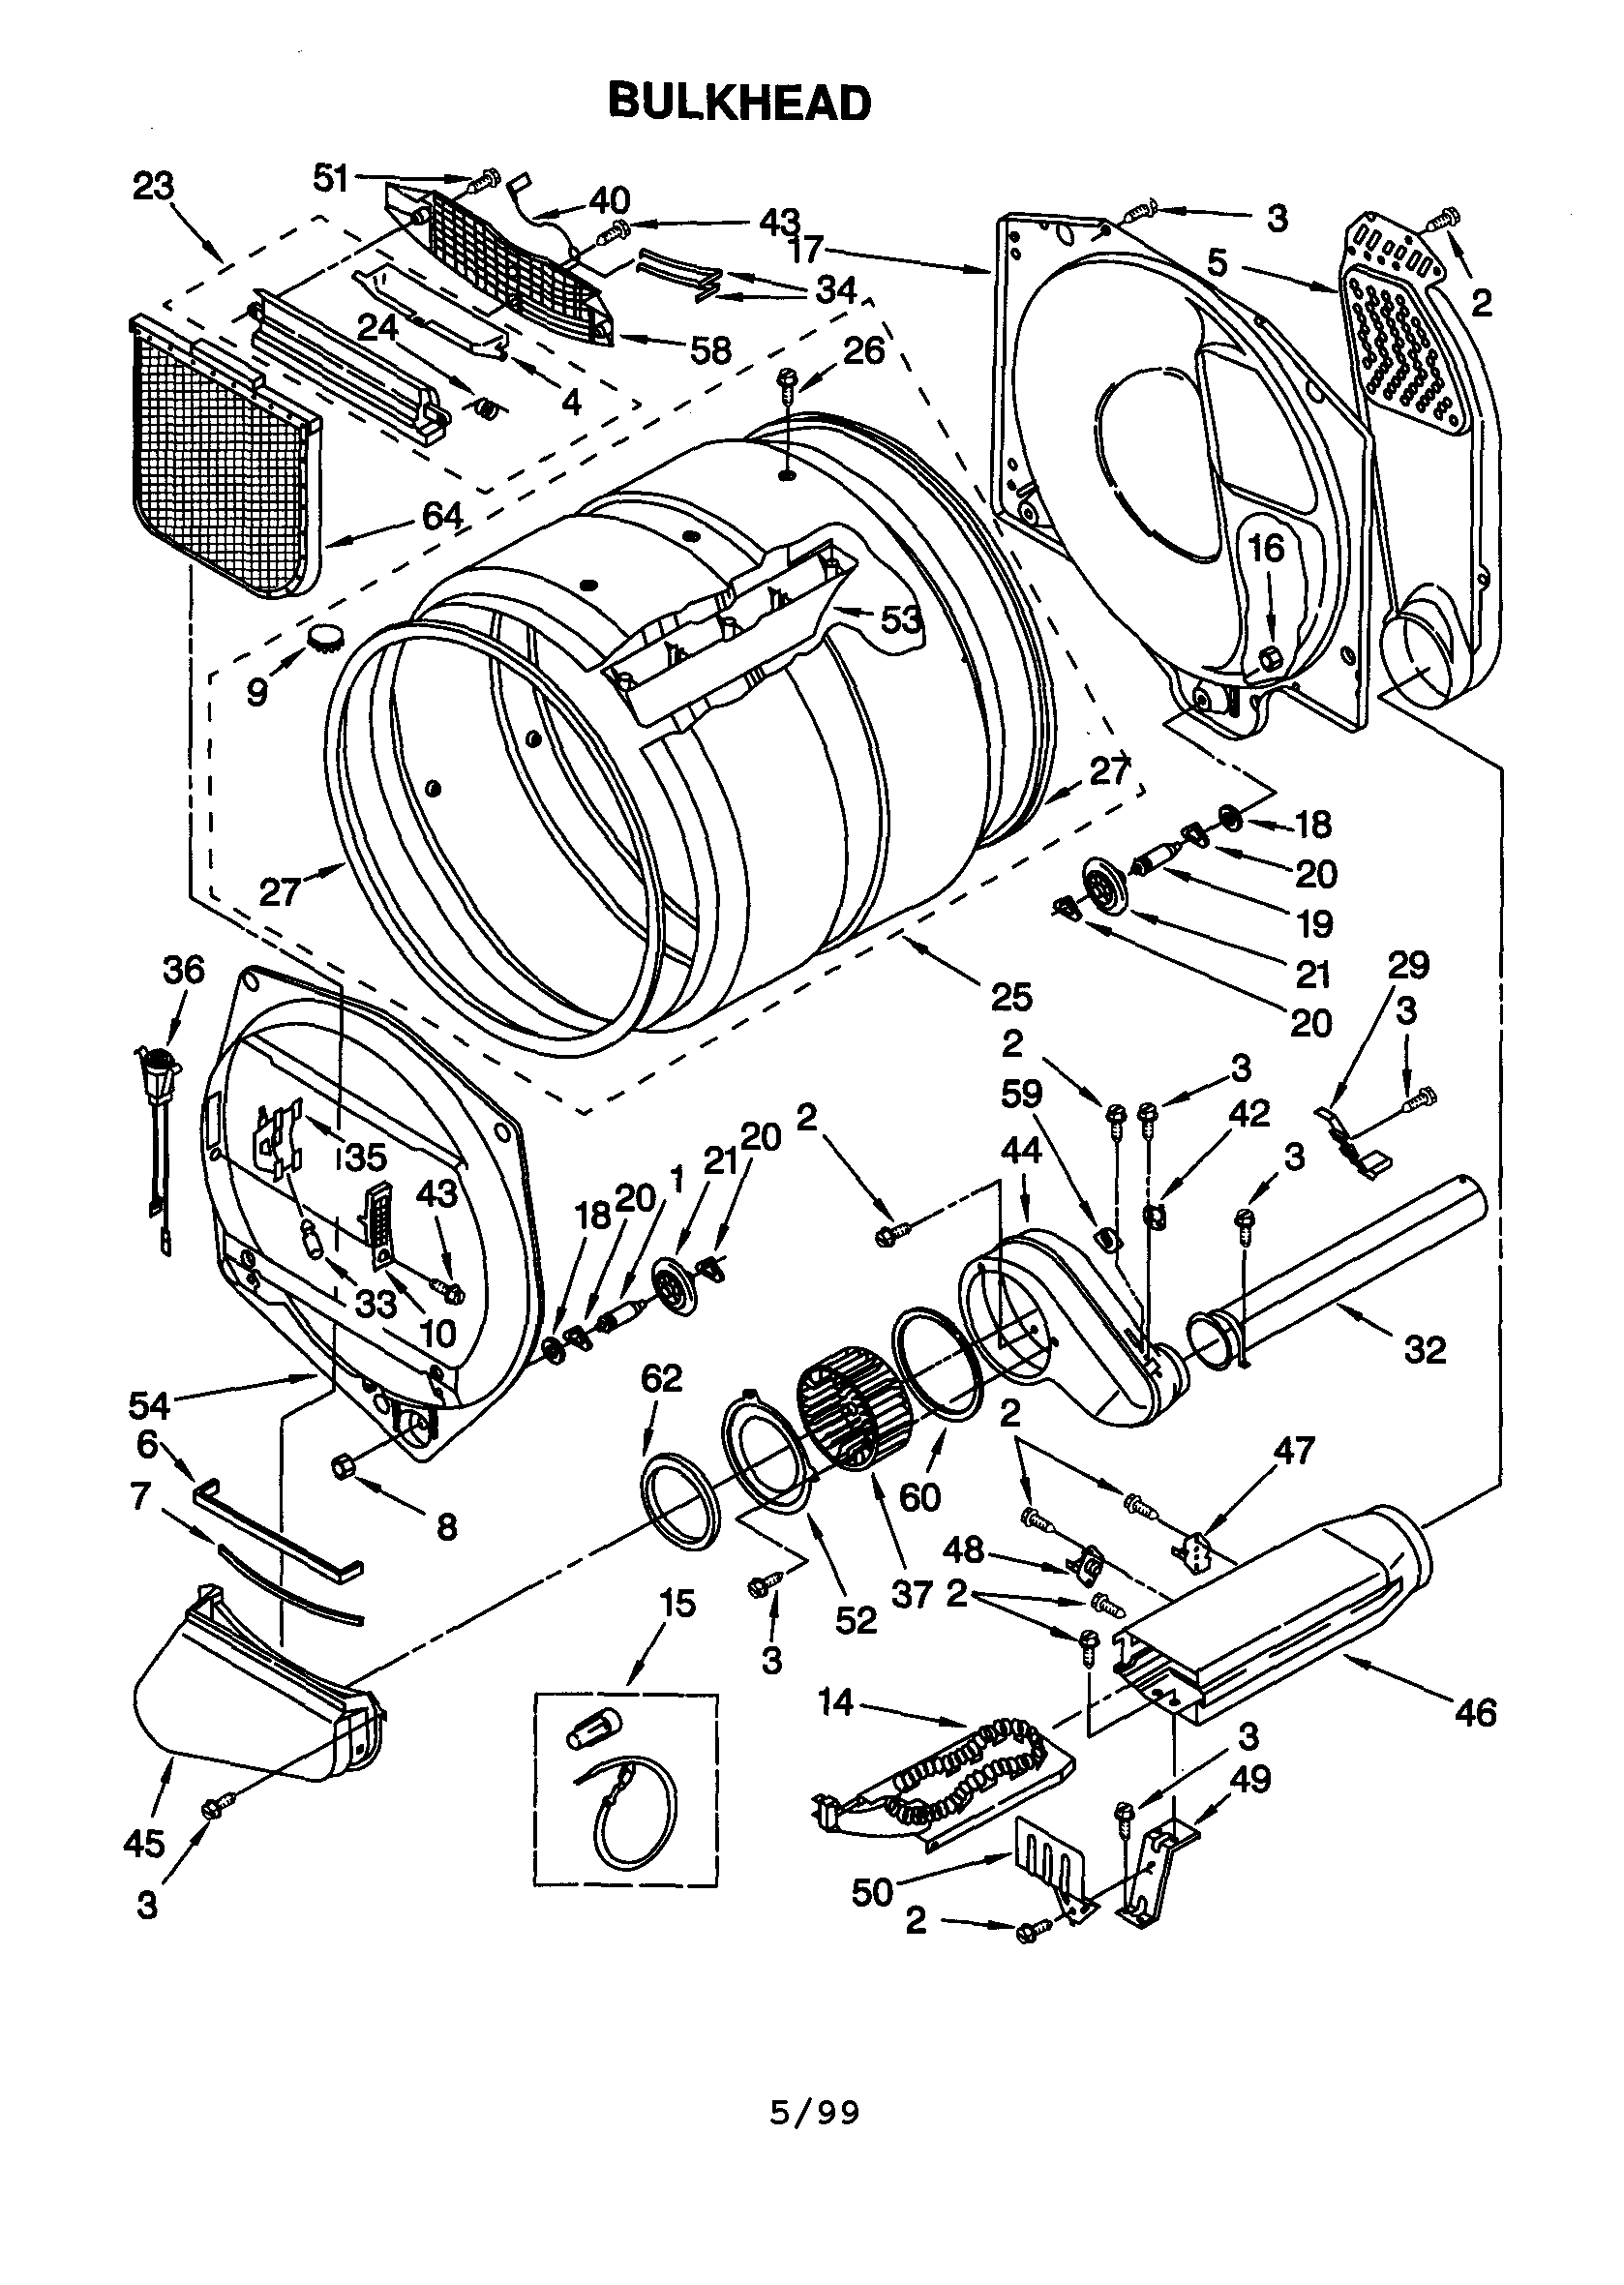 small resolution of kenmore 90 series model 110 60912990 parts diagram dryer repair kenmore front load dryer diagram best collection electrical wiring